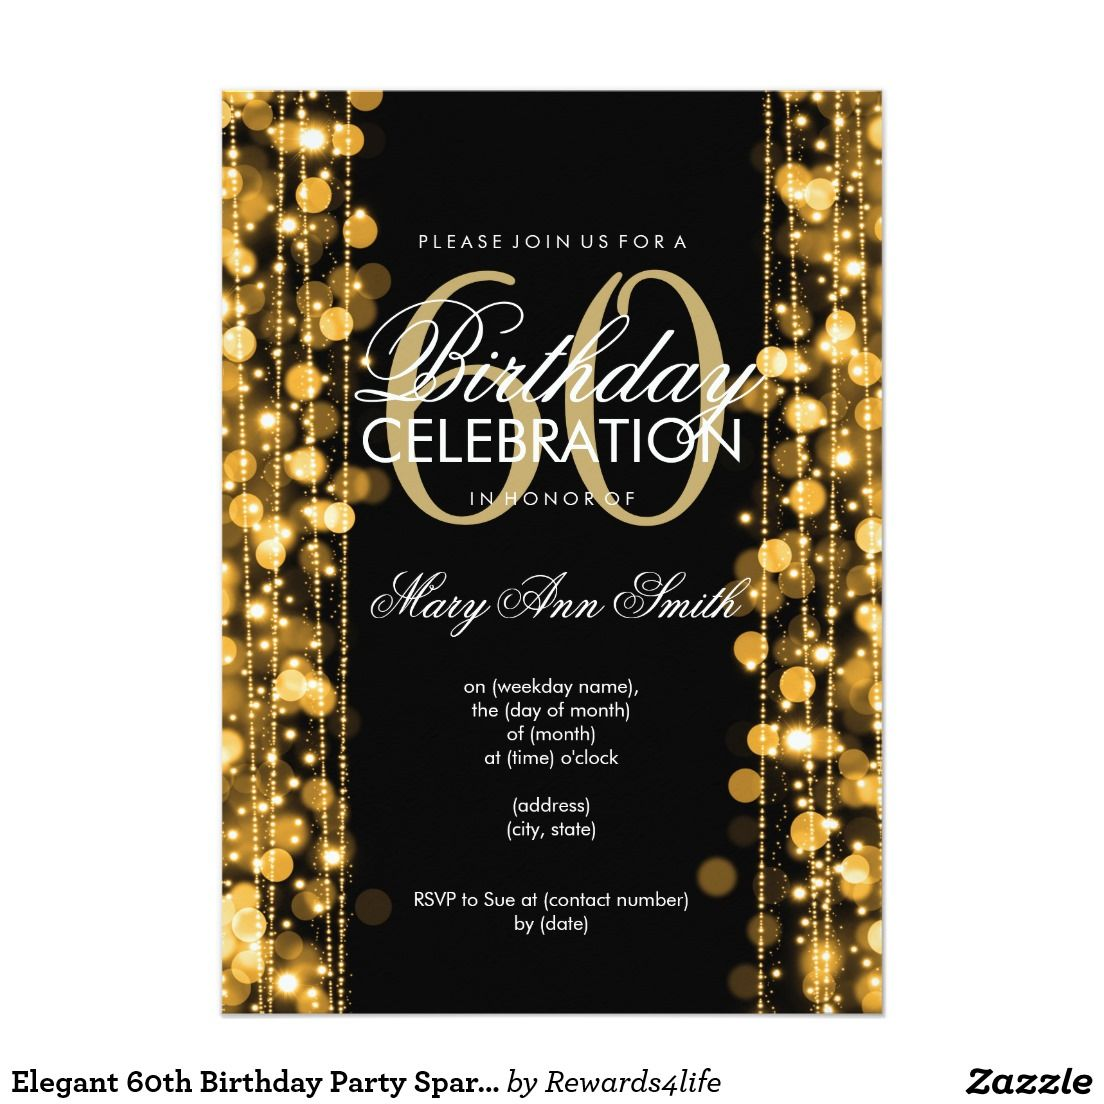 Elegant 60th birthday party sparkles gold invitation milestone elegant 60th birthday party sparkles gold 5x7 paper invitations artwork designed by rewards4lifes gifts filmwisefo